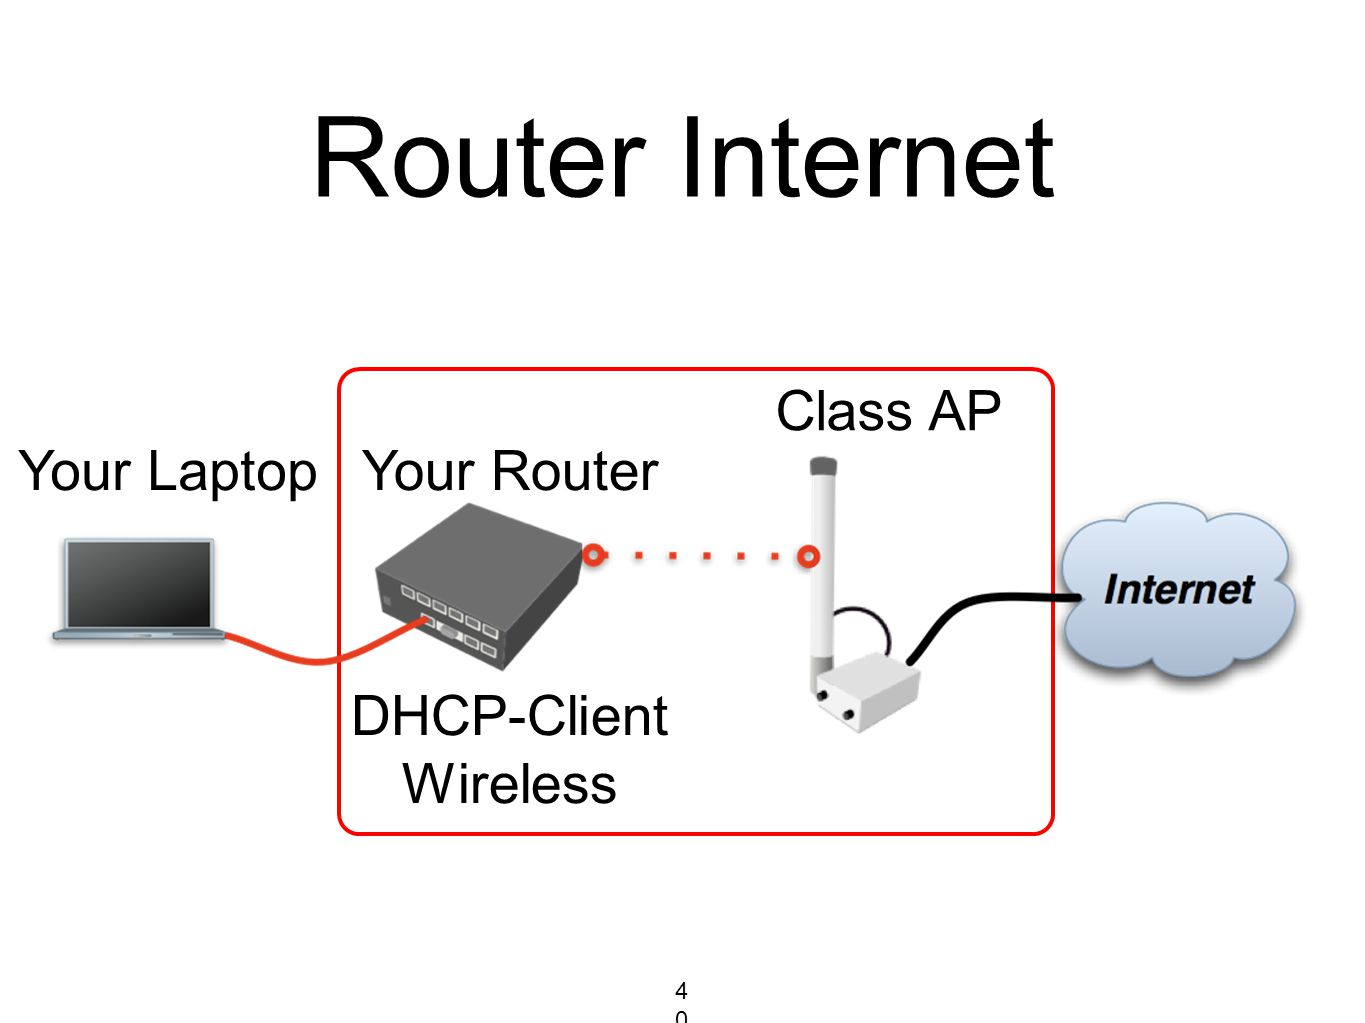 Router Internet Your RouterYour Laptop Class AP DHCP-Client Wireless 40